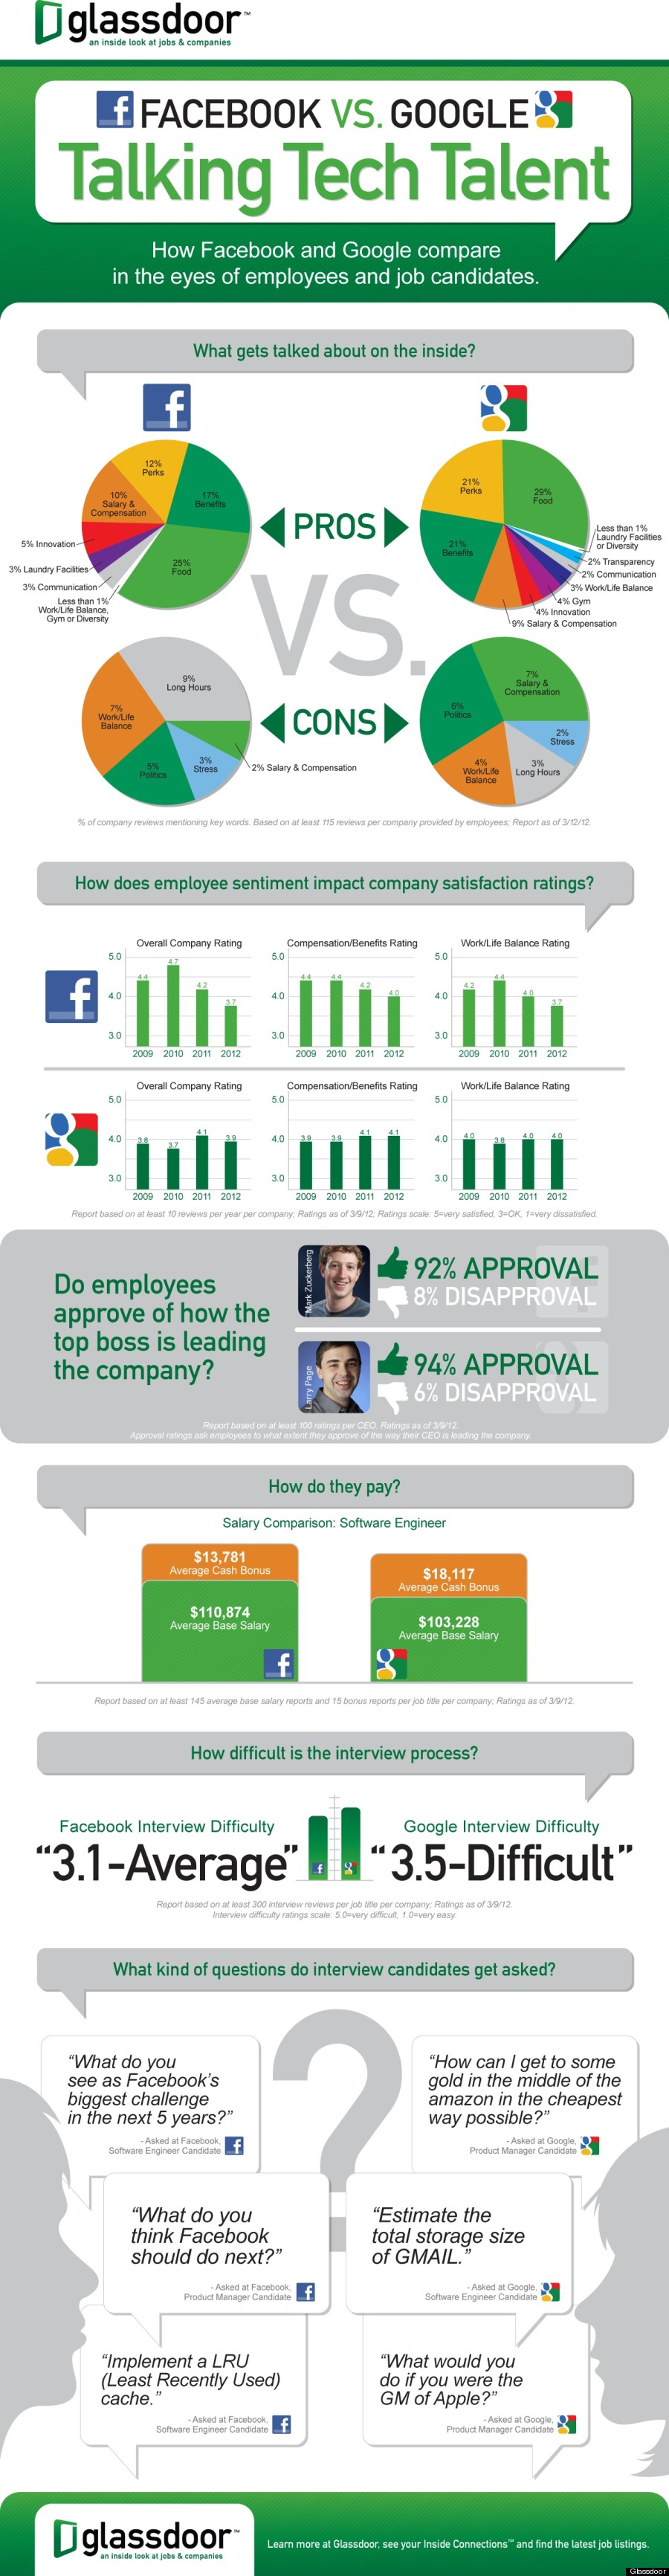 Facebook Vs Google Talent War Infographic  Infographic And Facebook